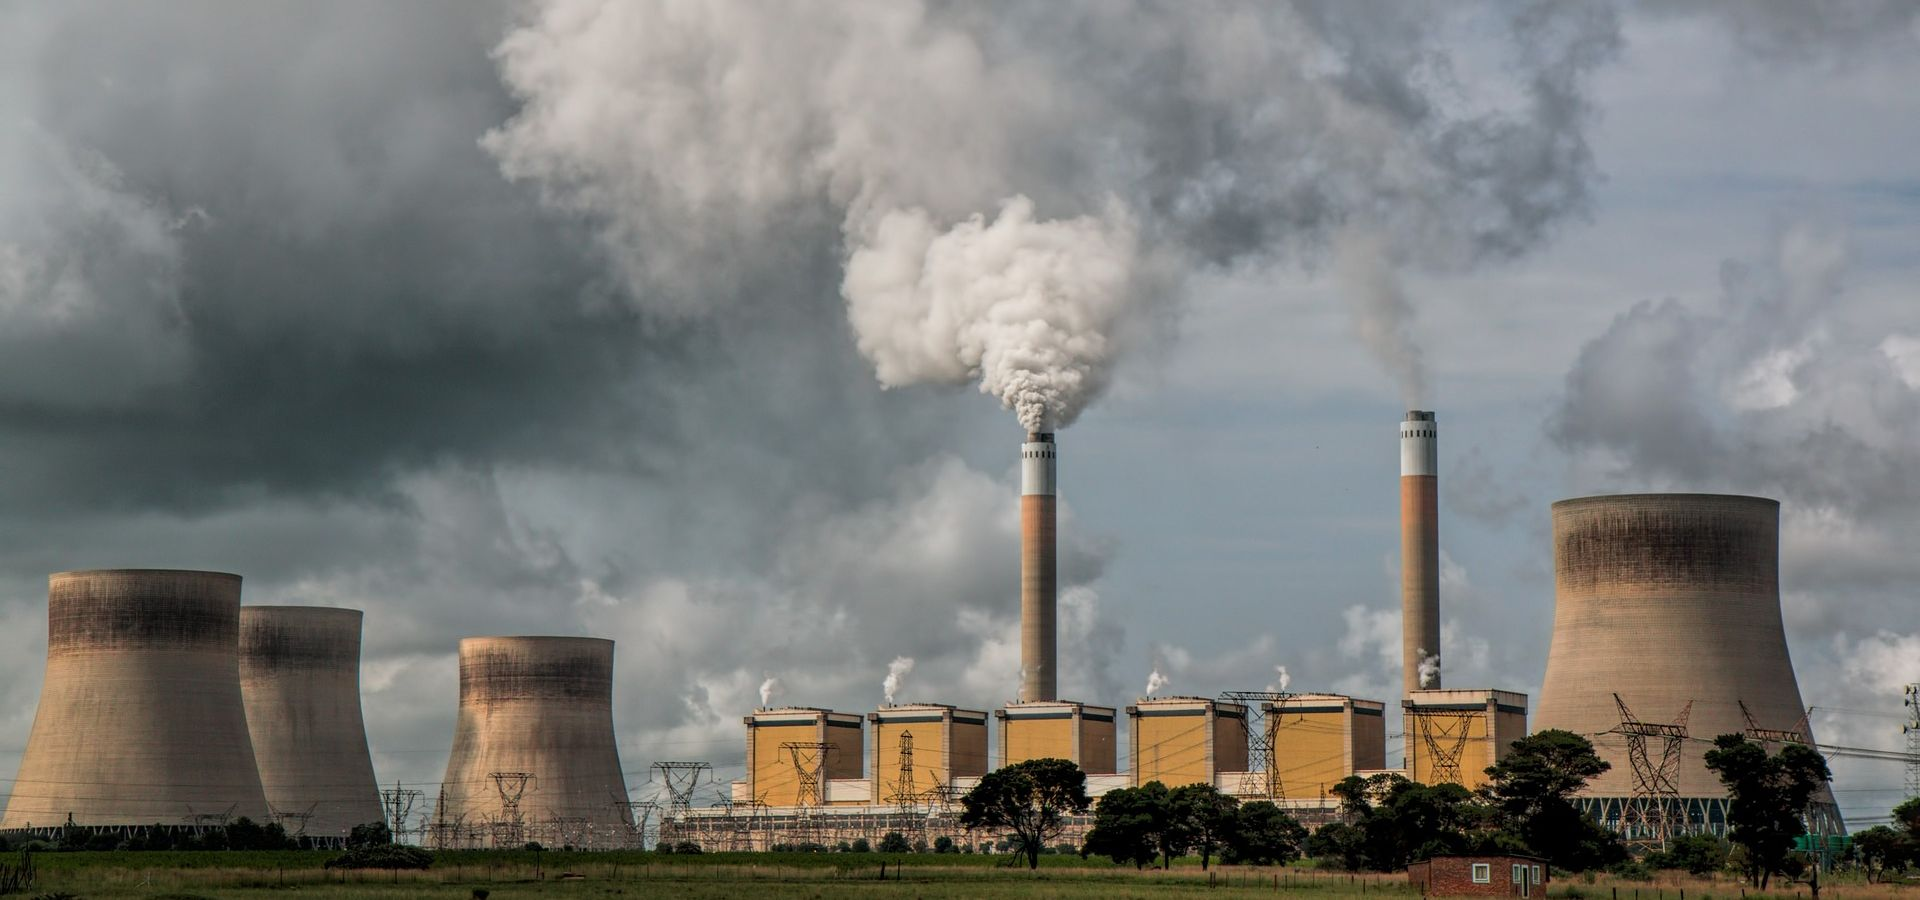 Power plants that drive emissions into the sky are no longer economically sustainable either.